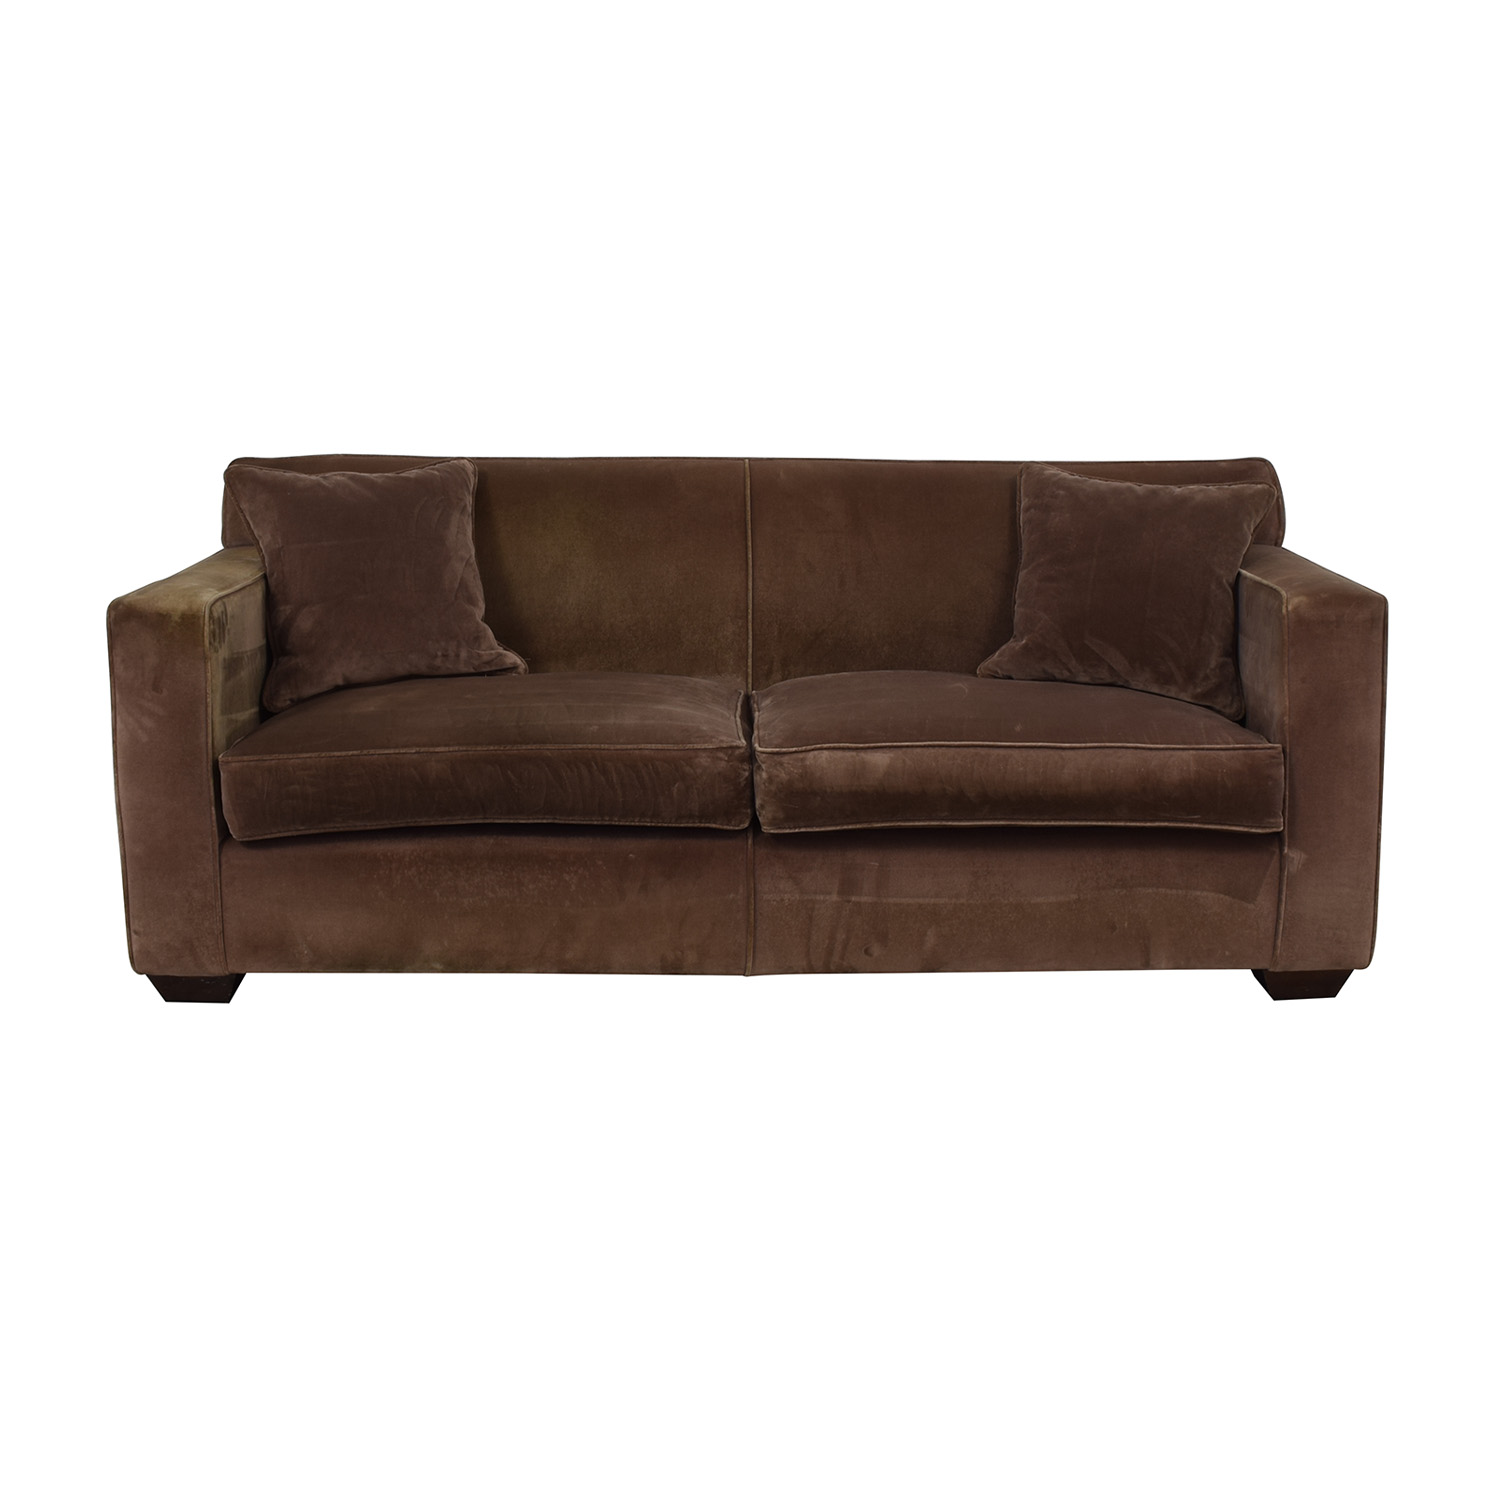 Classic Sofa Classic Sofa Custom Two Seat Sofa second hand